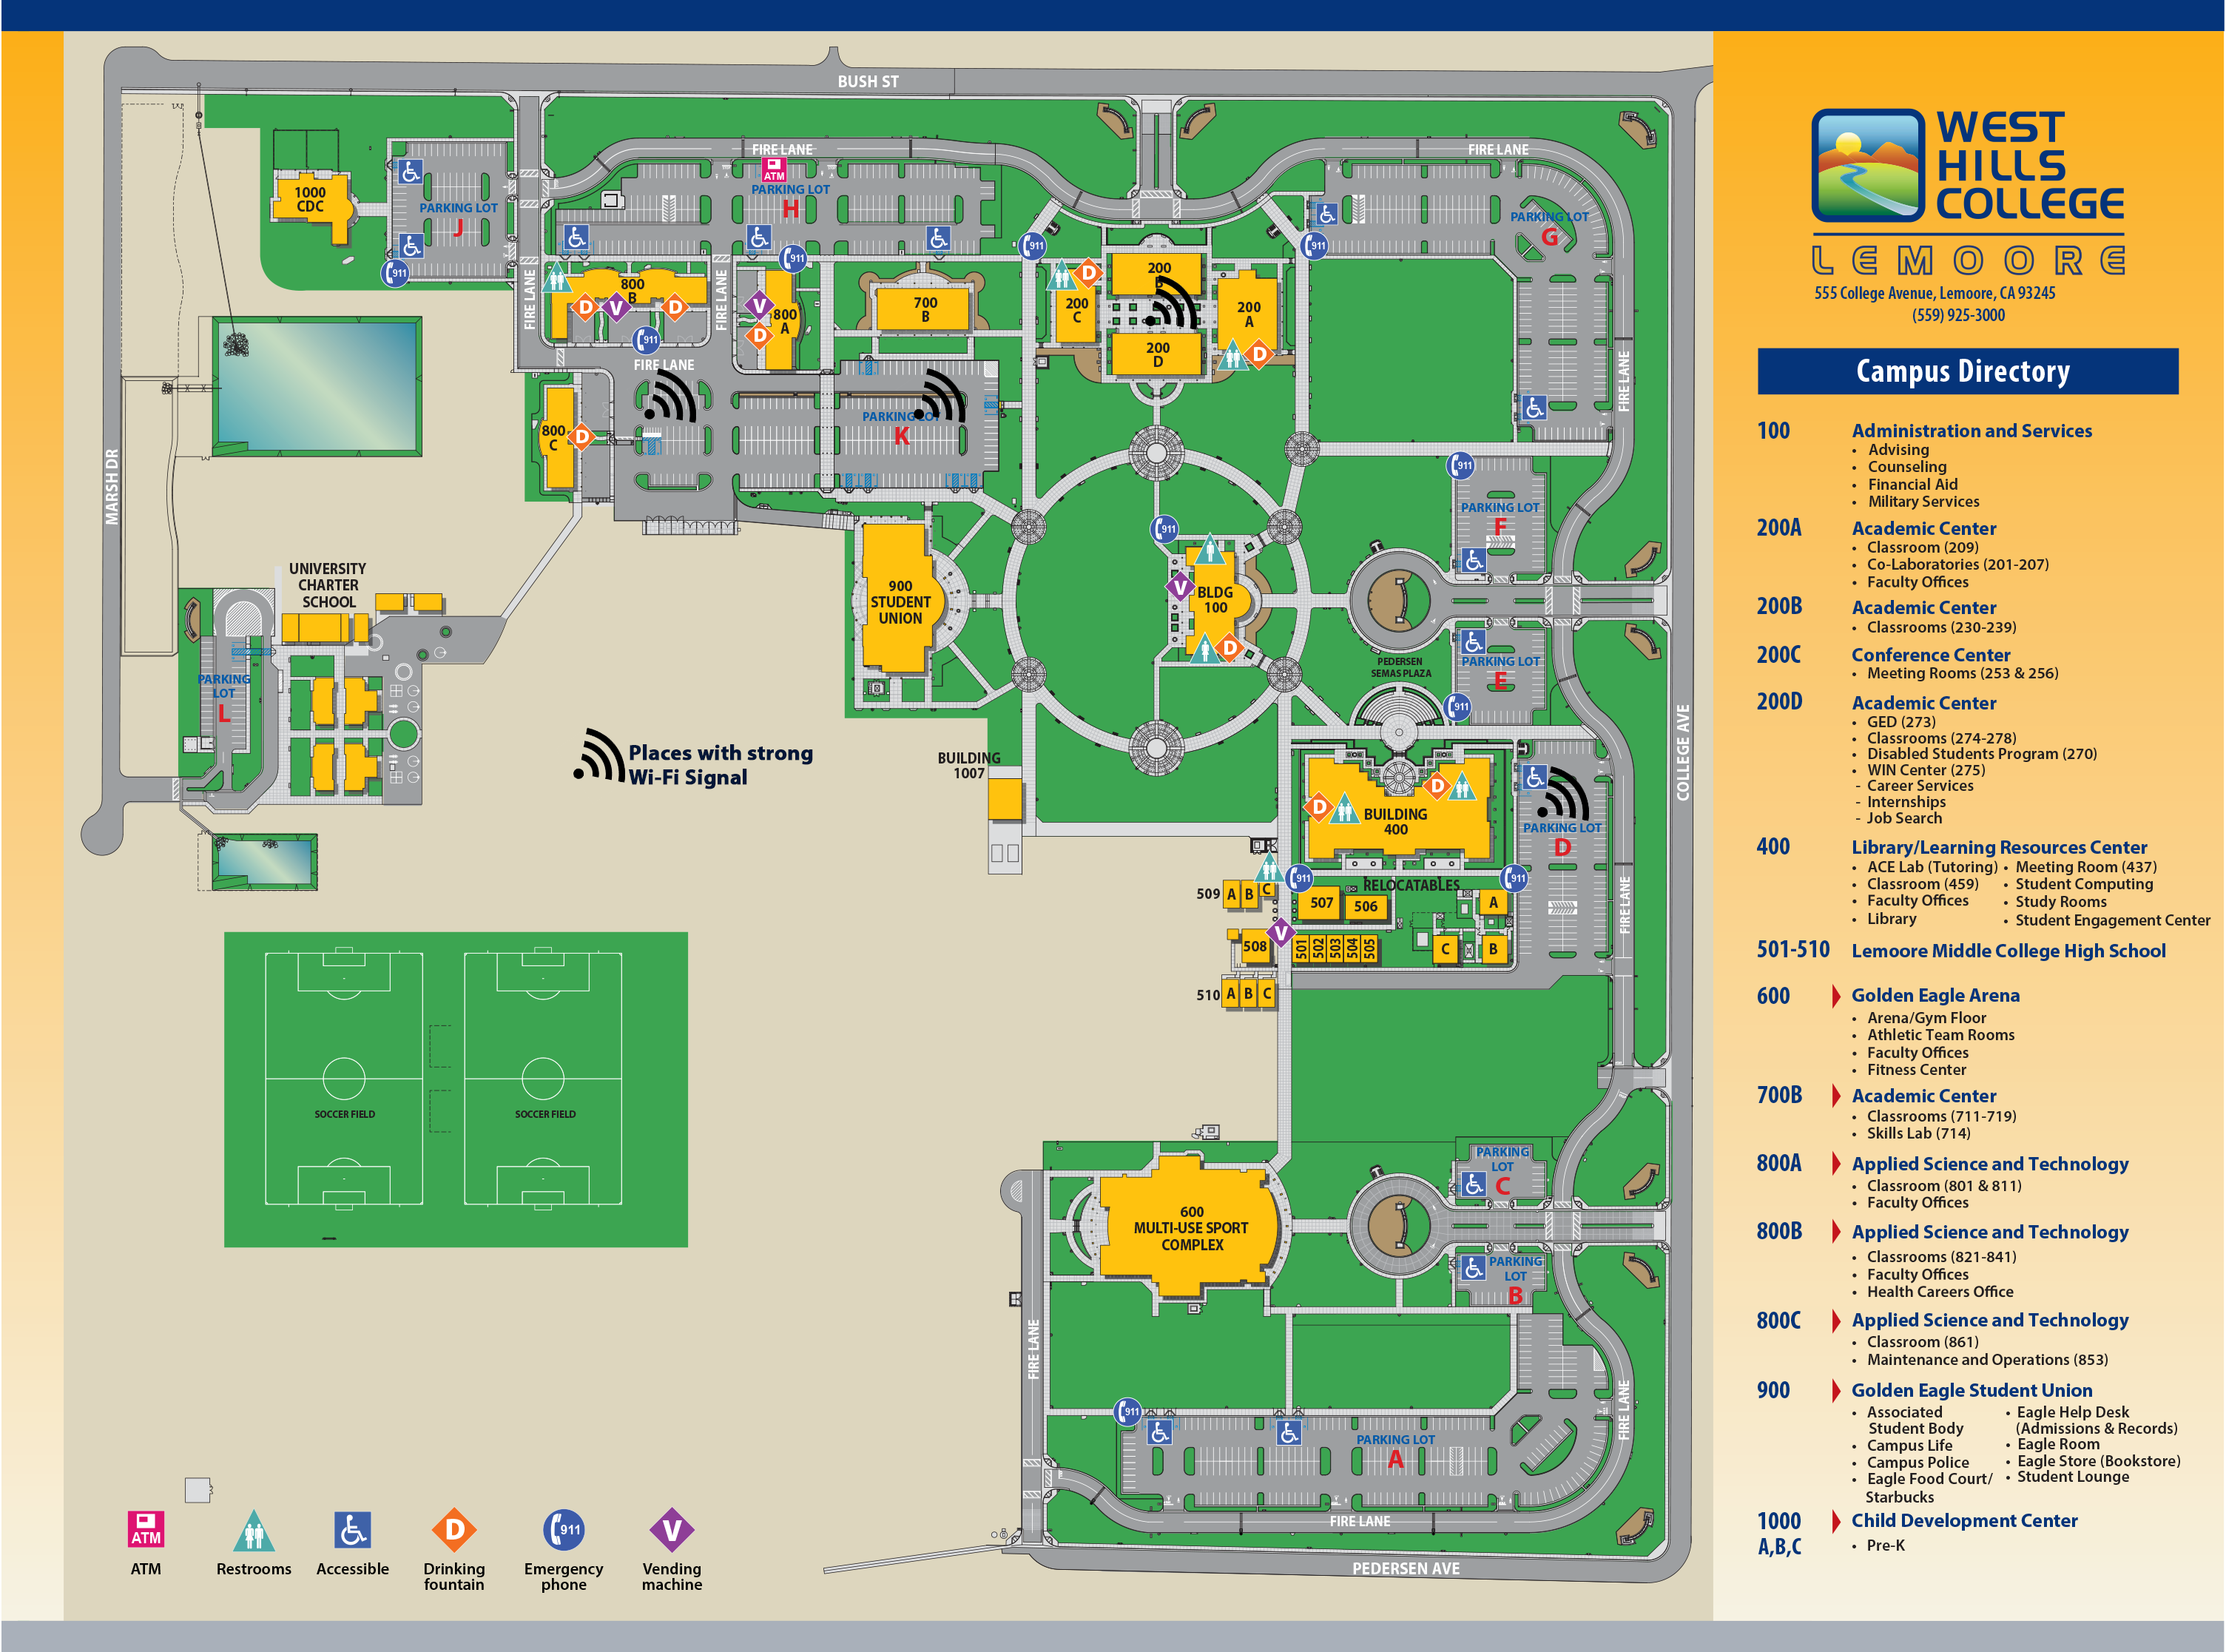 whcl-campusdirectory.png